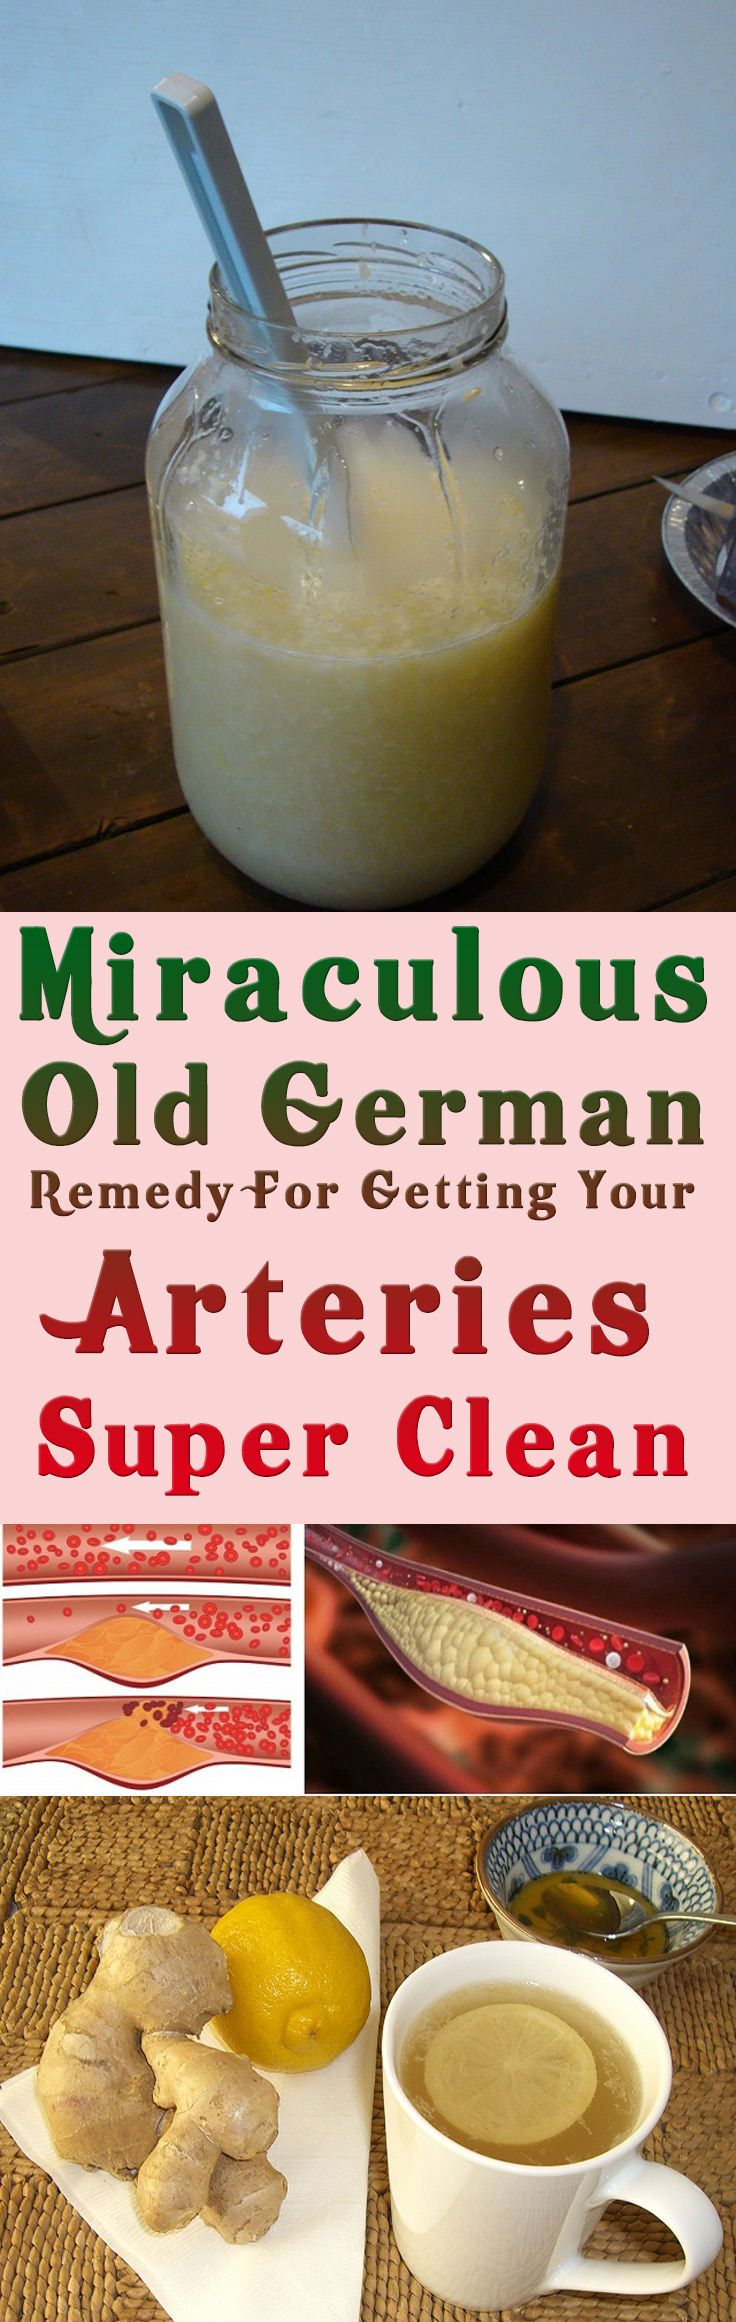 Miraculous Old German Remedy For Getting Your Arteries Super Clean #health #diy #beauty #fitness